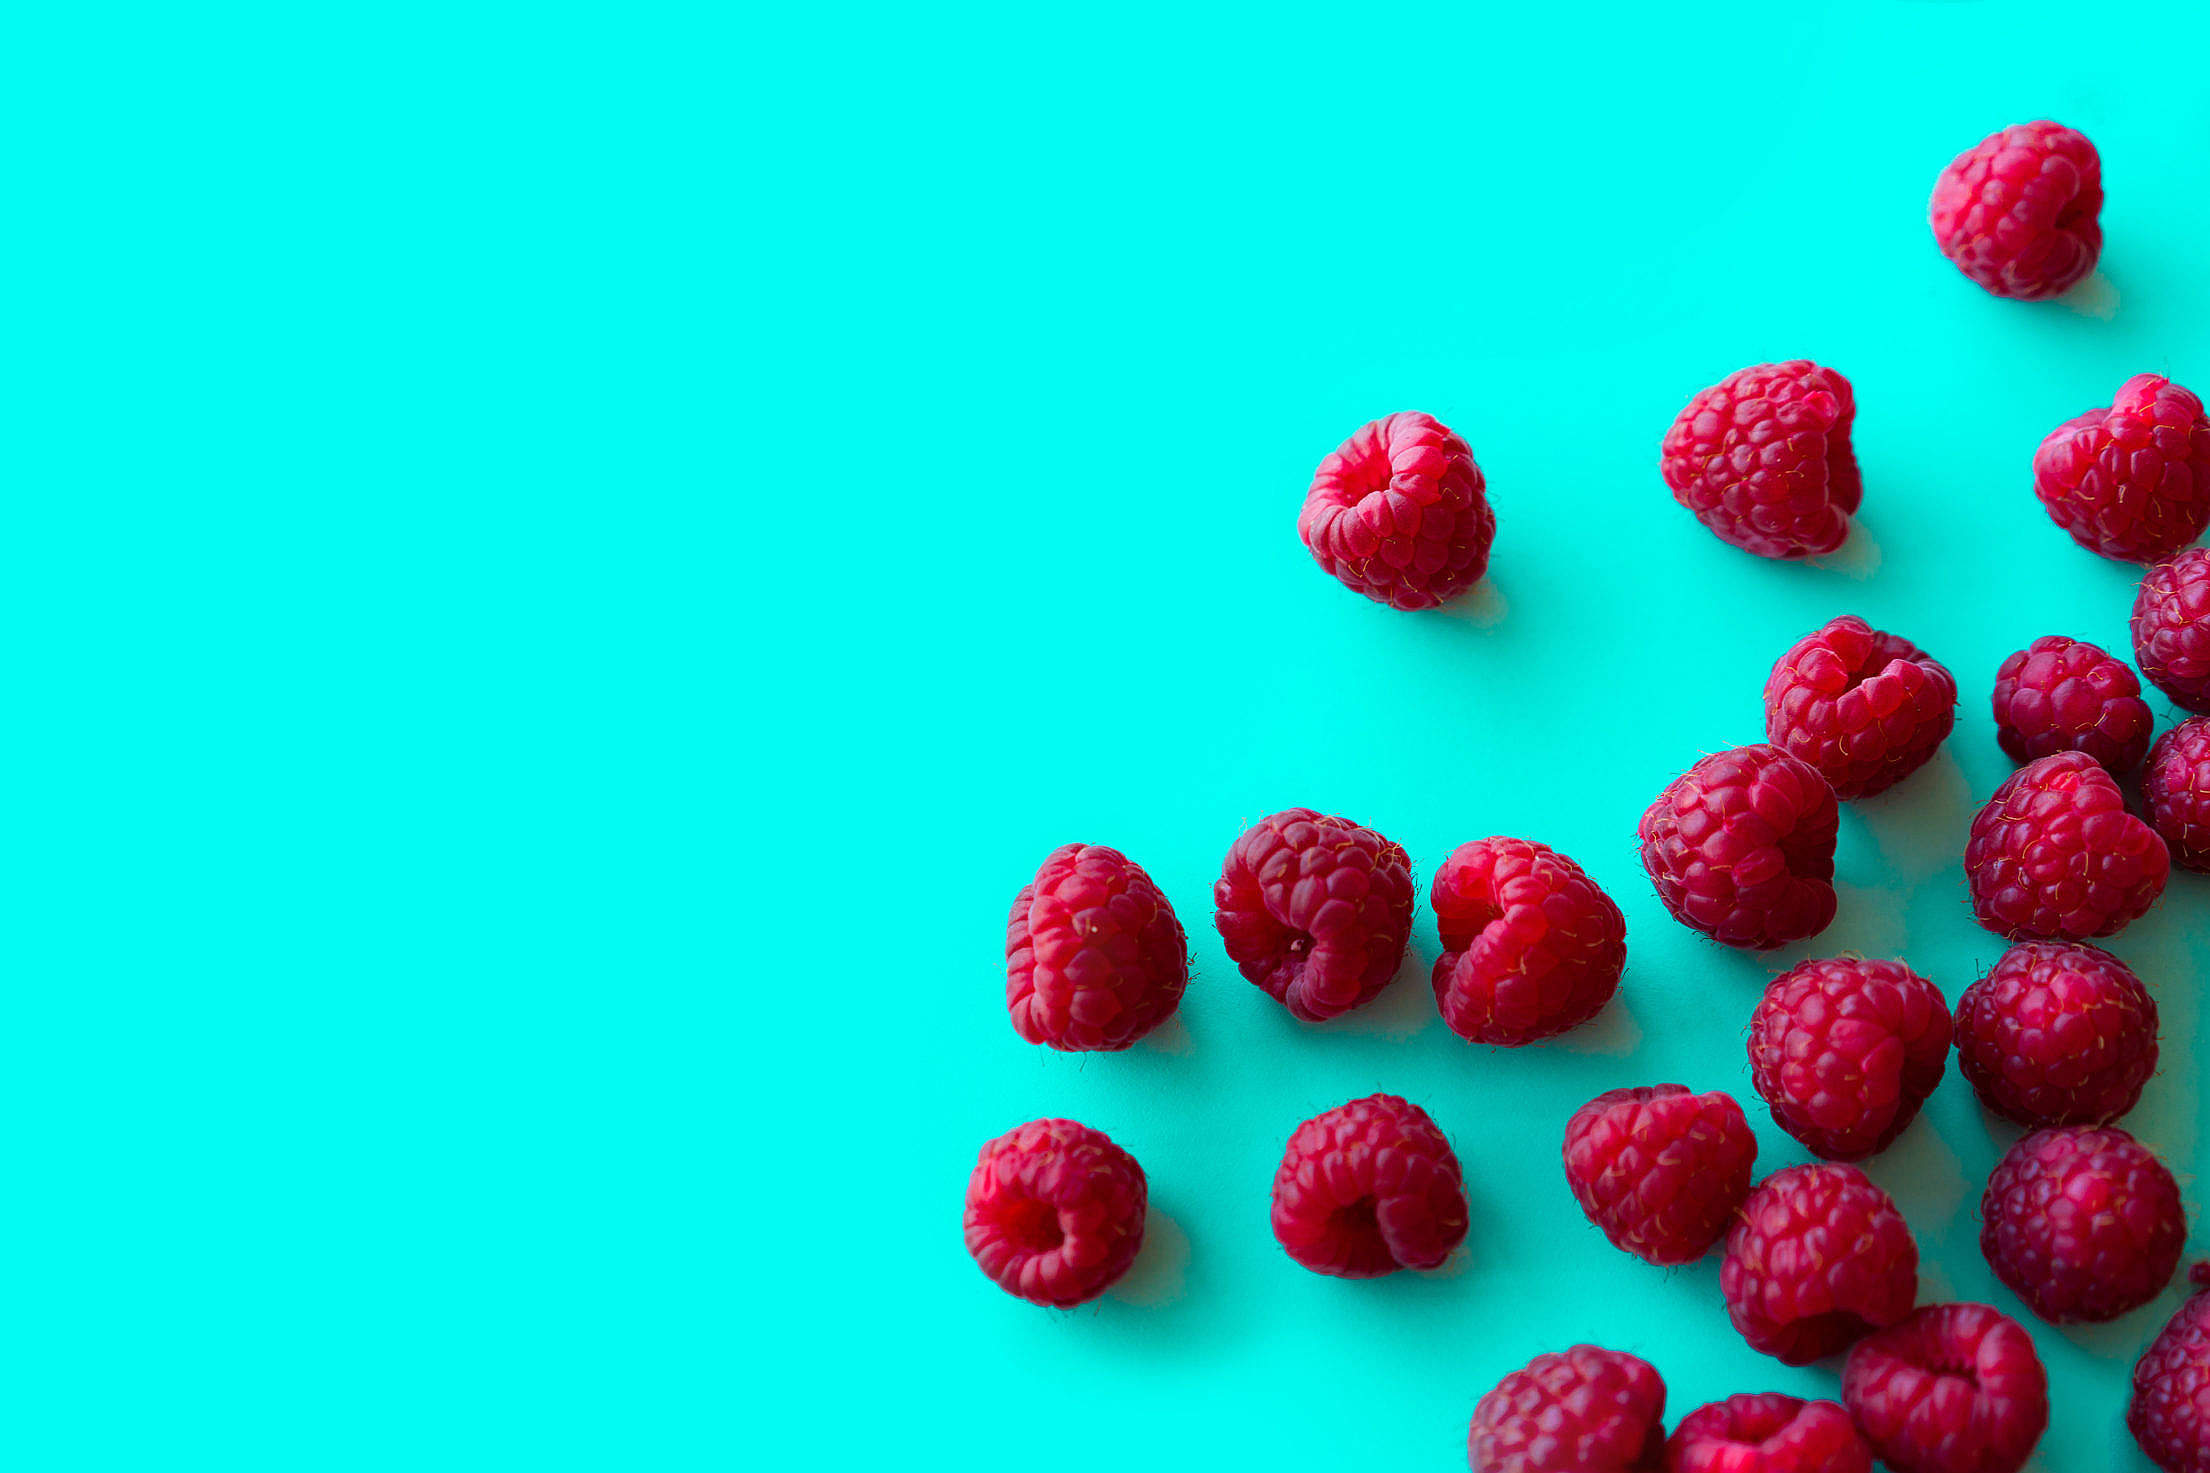 Raspberries with Blue Background Space for Text Free Stock Photo